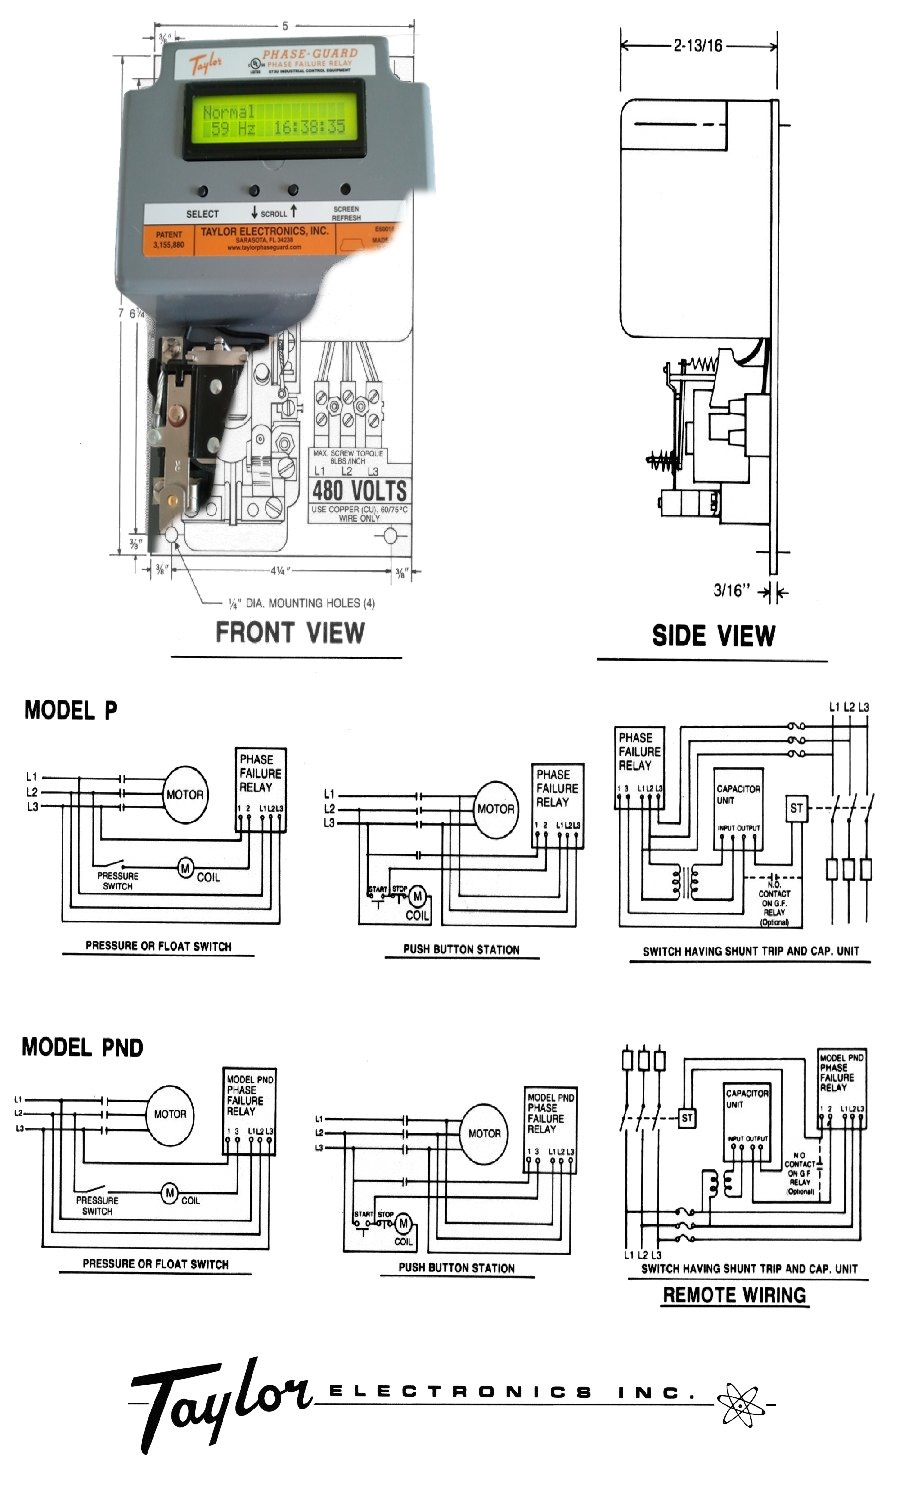 1991 Toyota Pickup Hilux Electrical System Wiring Diagram Download